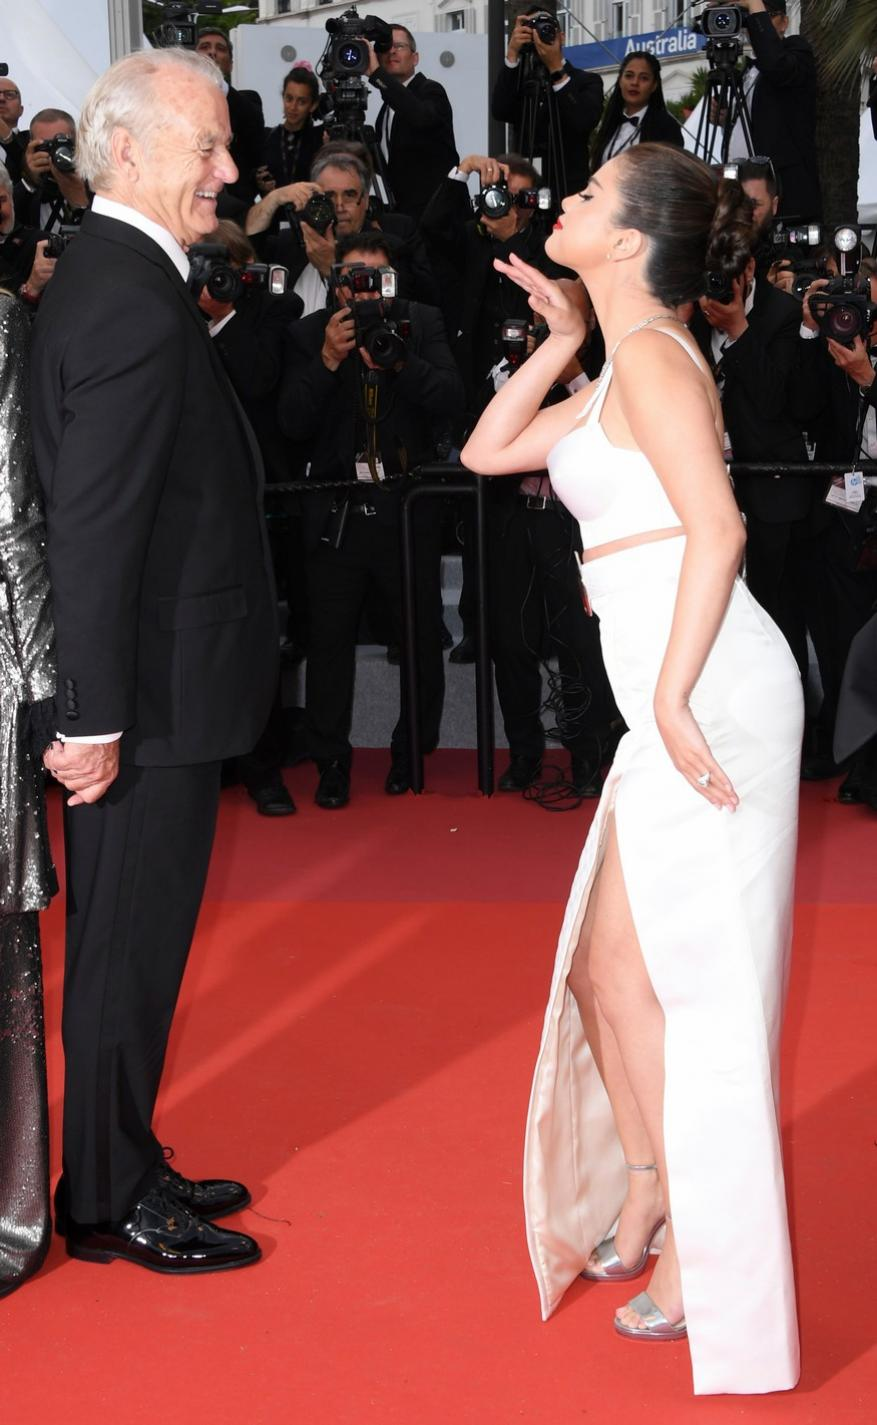 The Most Elegant Red Carpet Looks At Cannes 2019 Opening Night Are Out